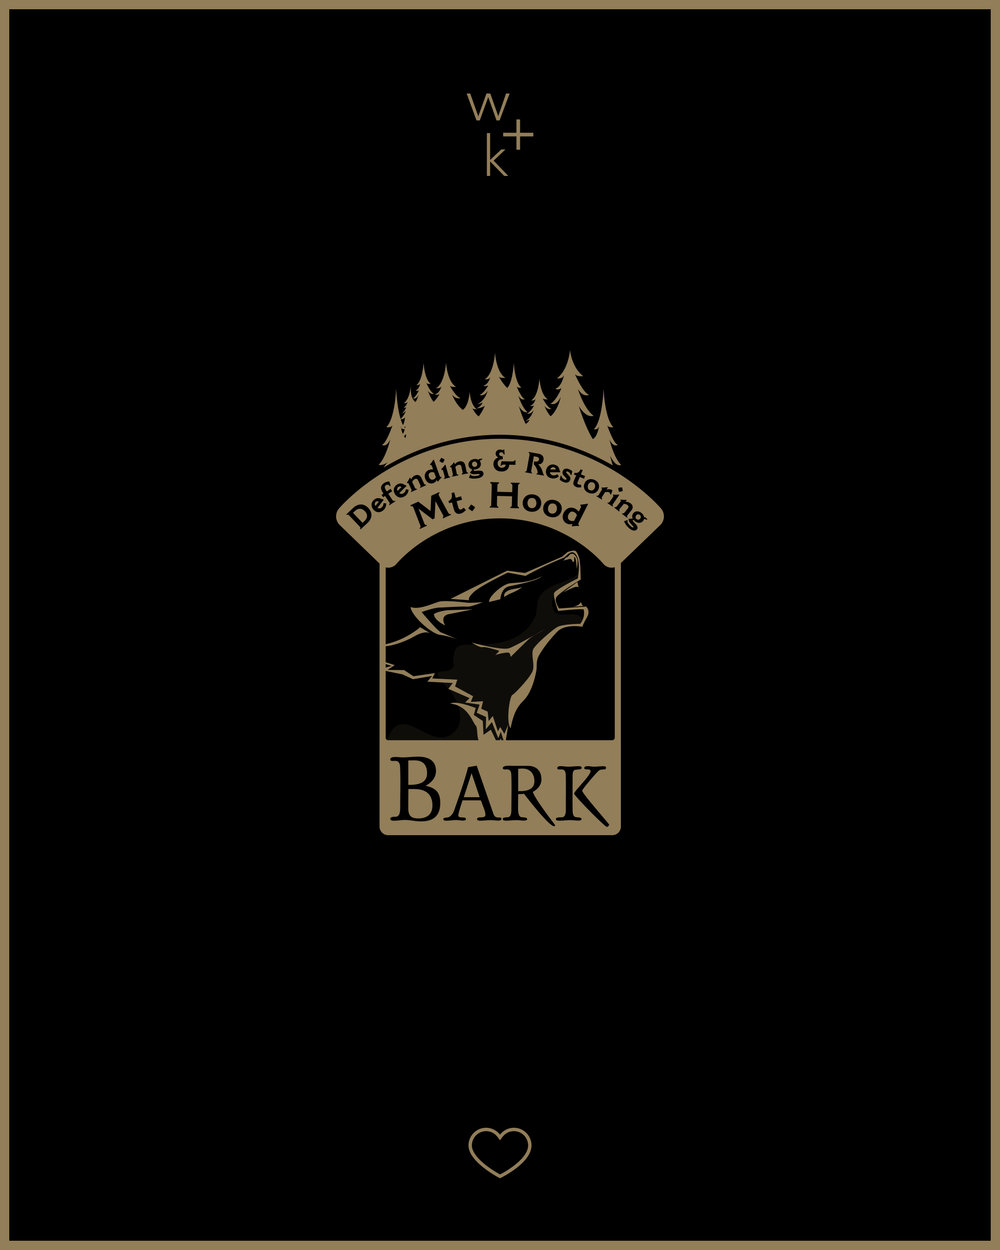 Holiday 2018_Bark_logo.jpg